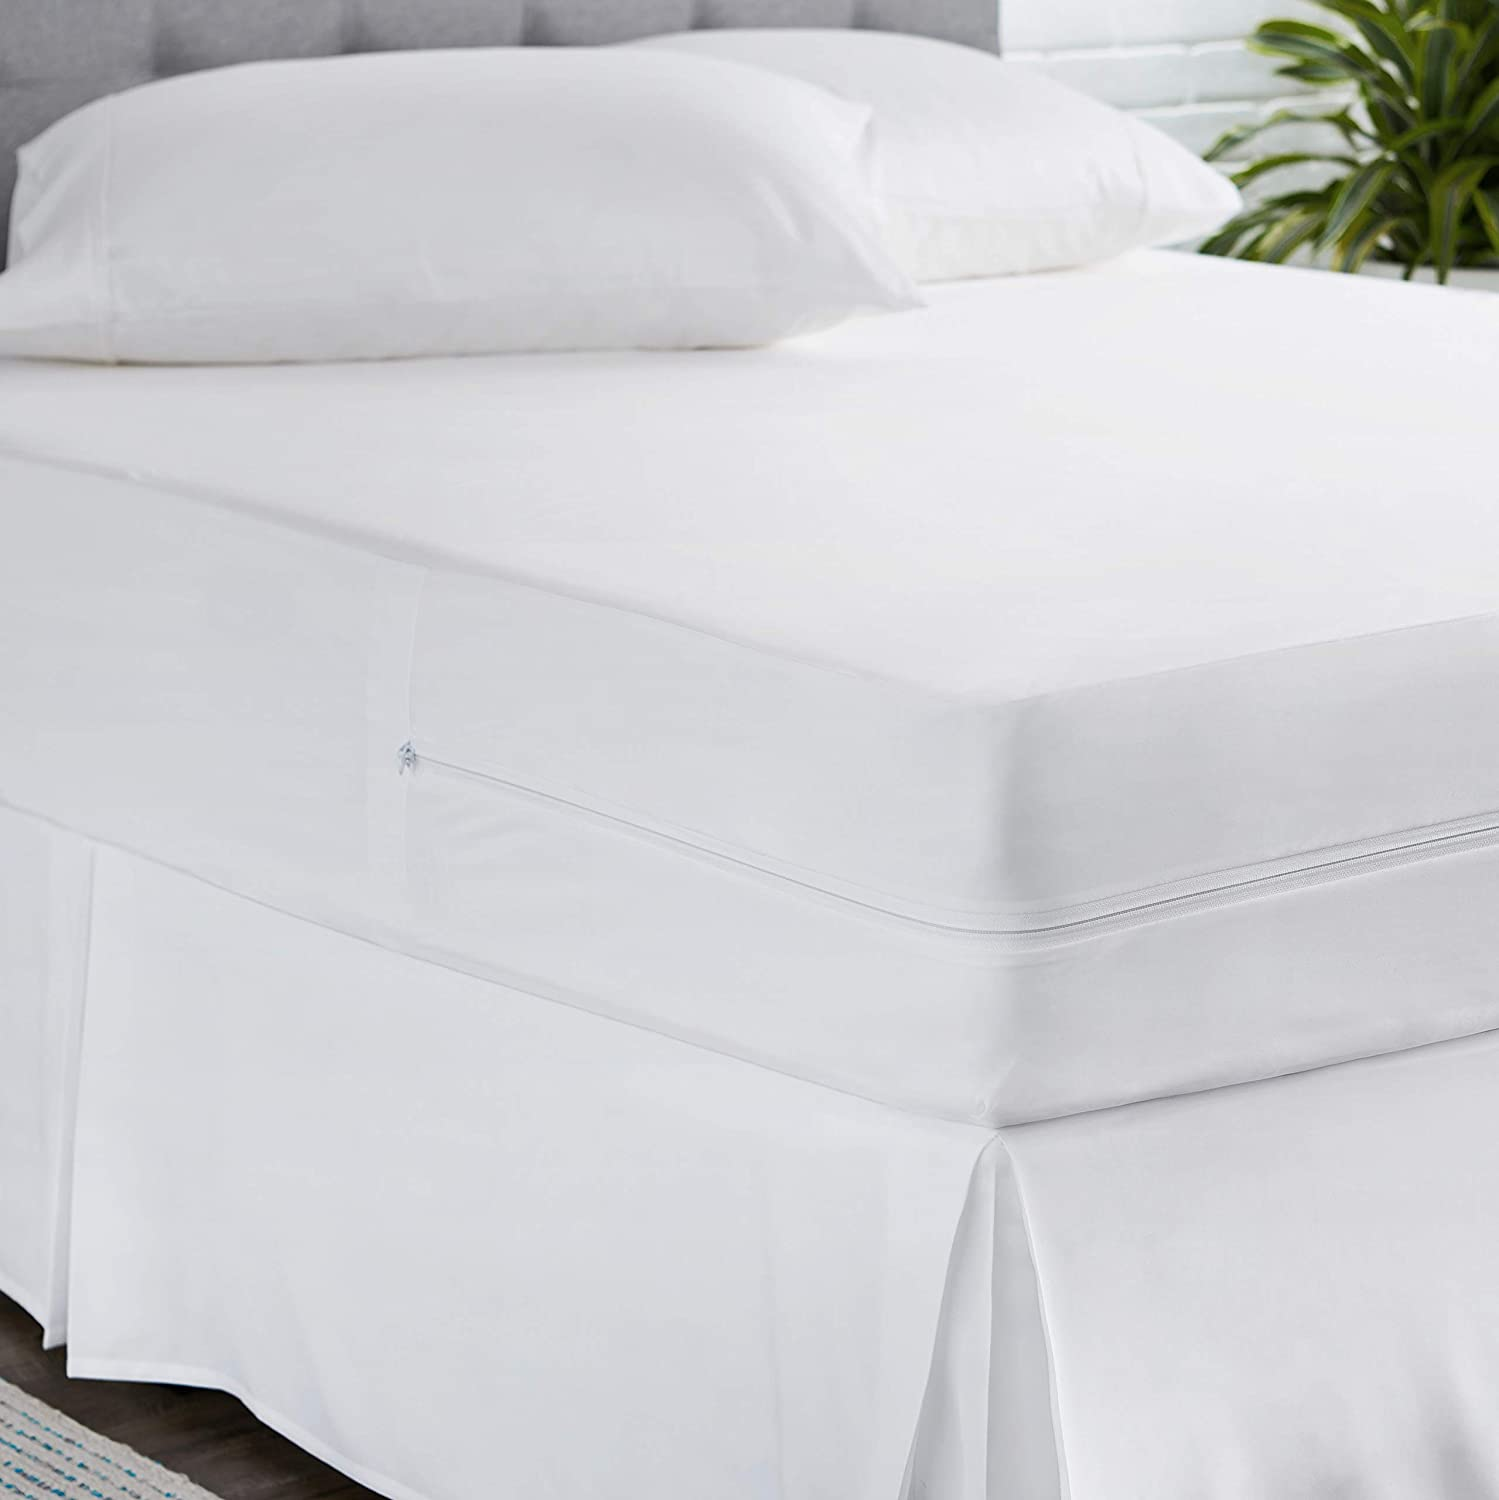 AmazonBasics Fully-Encased Waterproof Mattress Cover Protector, Twin, Low Profile 9 to 12-Inch Depth